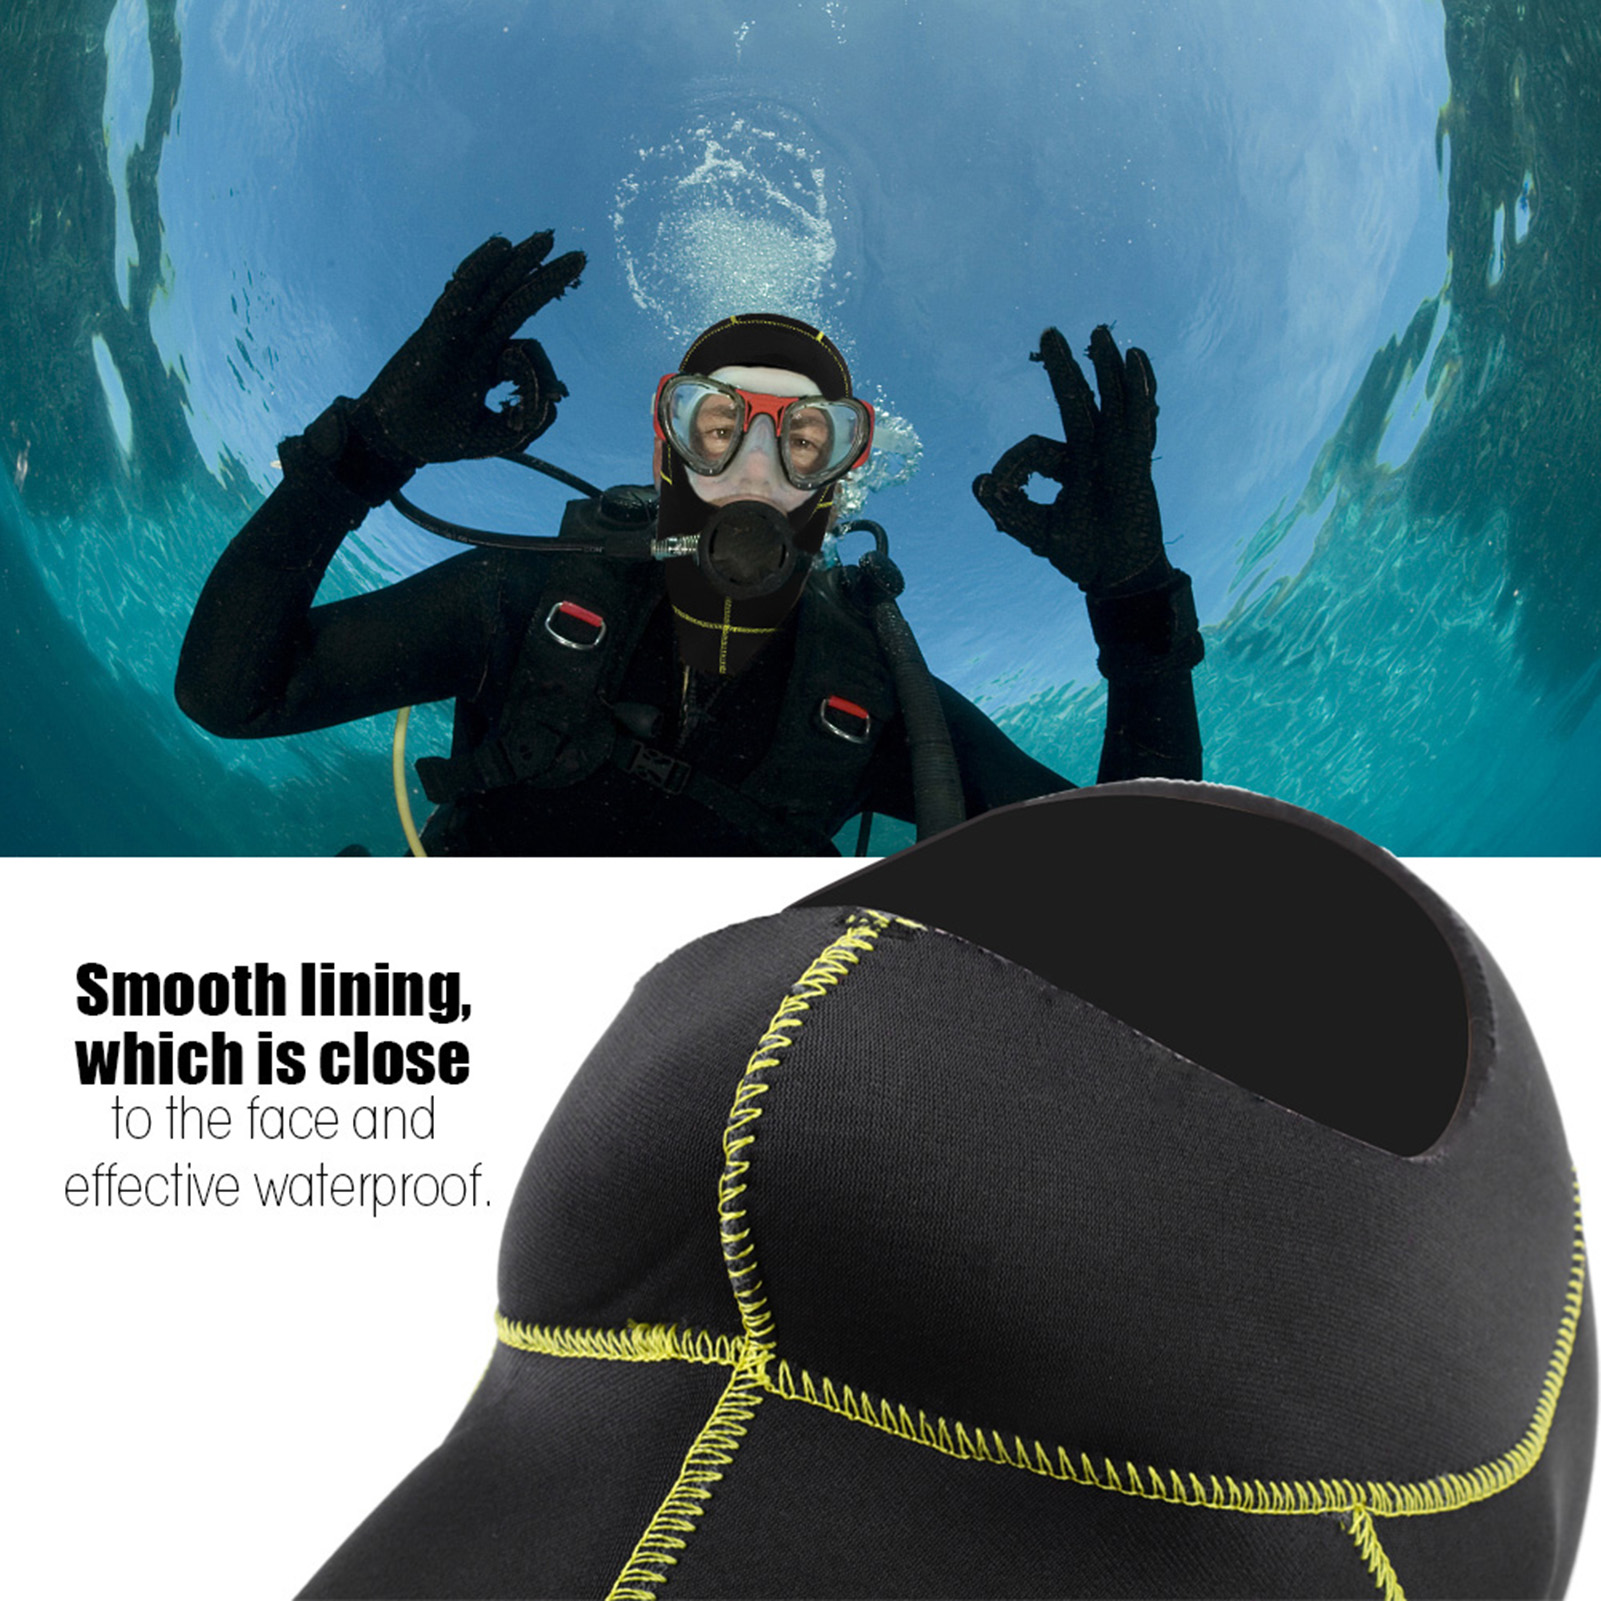 3mm-Neoprene-Scuba-Diving-Cap-Swimming-Warm-keeping-Wetsuit-Snorkeling-Hat-Hood thumbnail 20